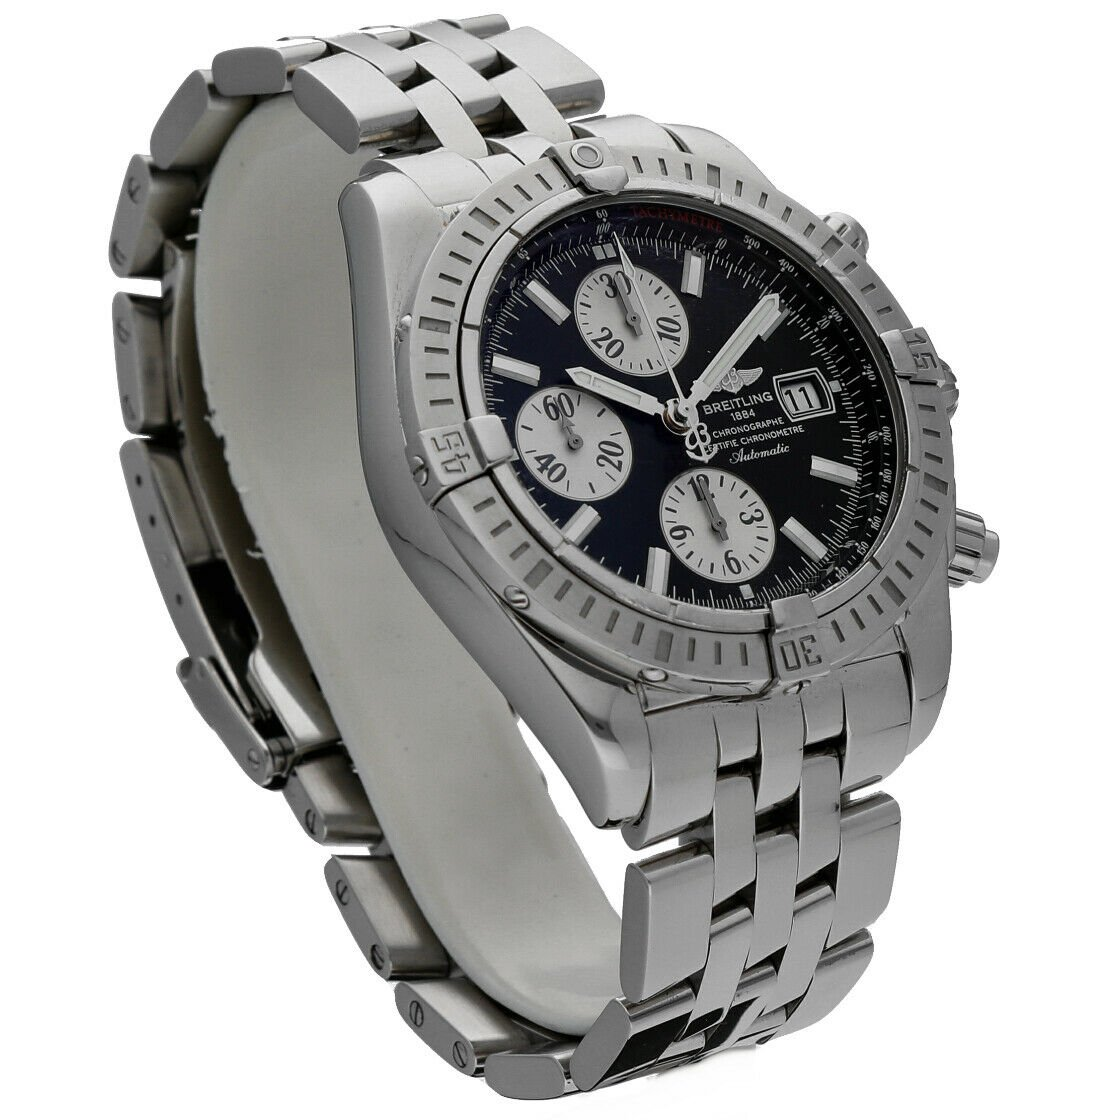 Breitling A13356 Chronomat Black Dial Chronograph Steel 44 Automatic Mens Watch 114241901873 3